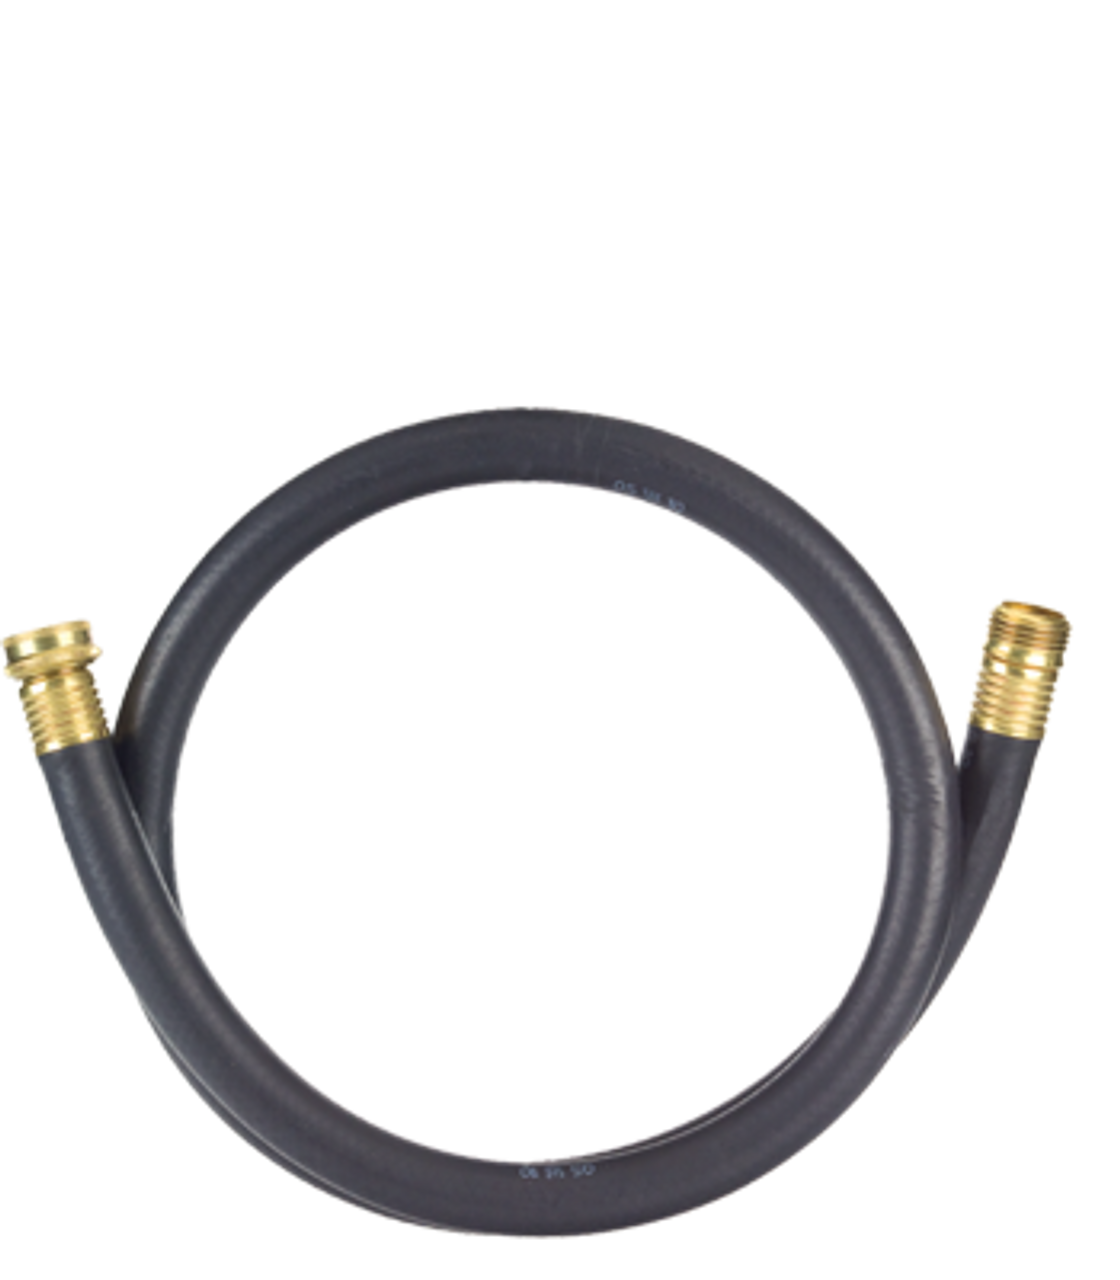 Well designed hose at an affordable price.